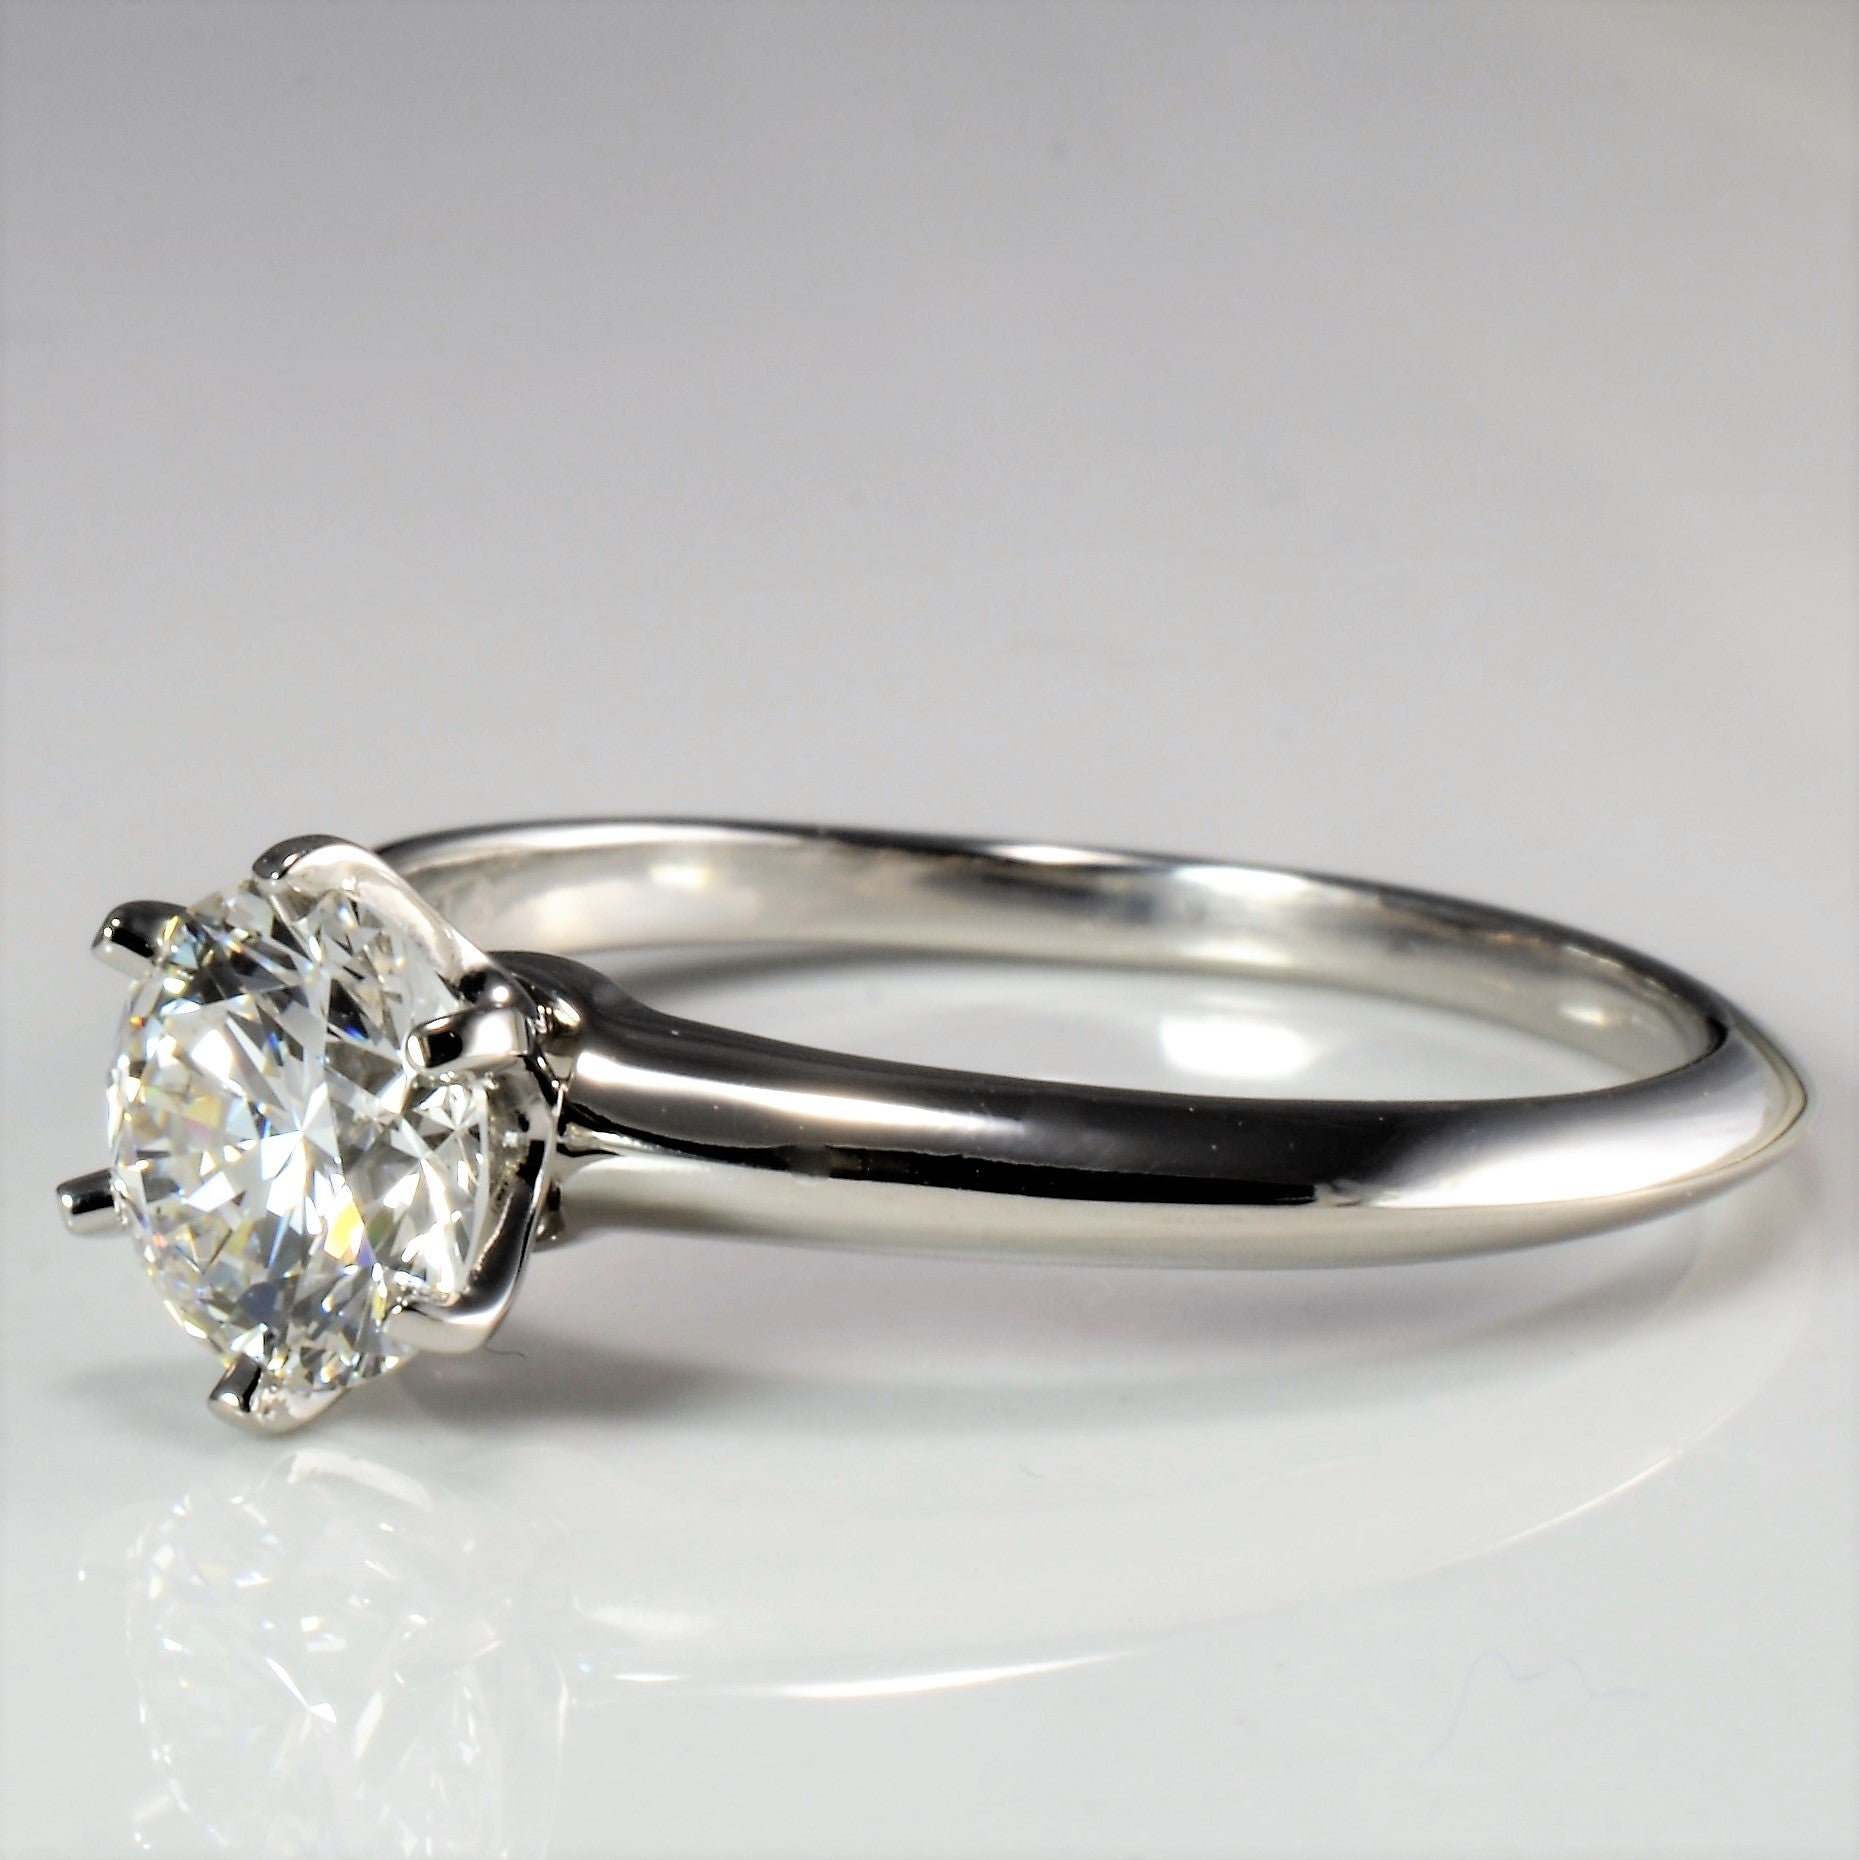 Tiffany & Co. Six Prong Solitaire Diamond Engagement Ring | 1.51 ct, SZ 10.5 |